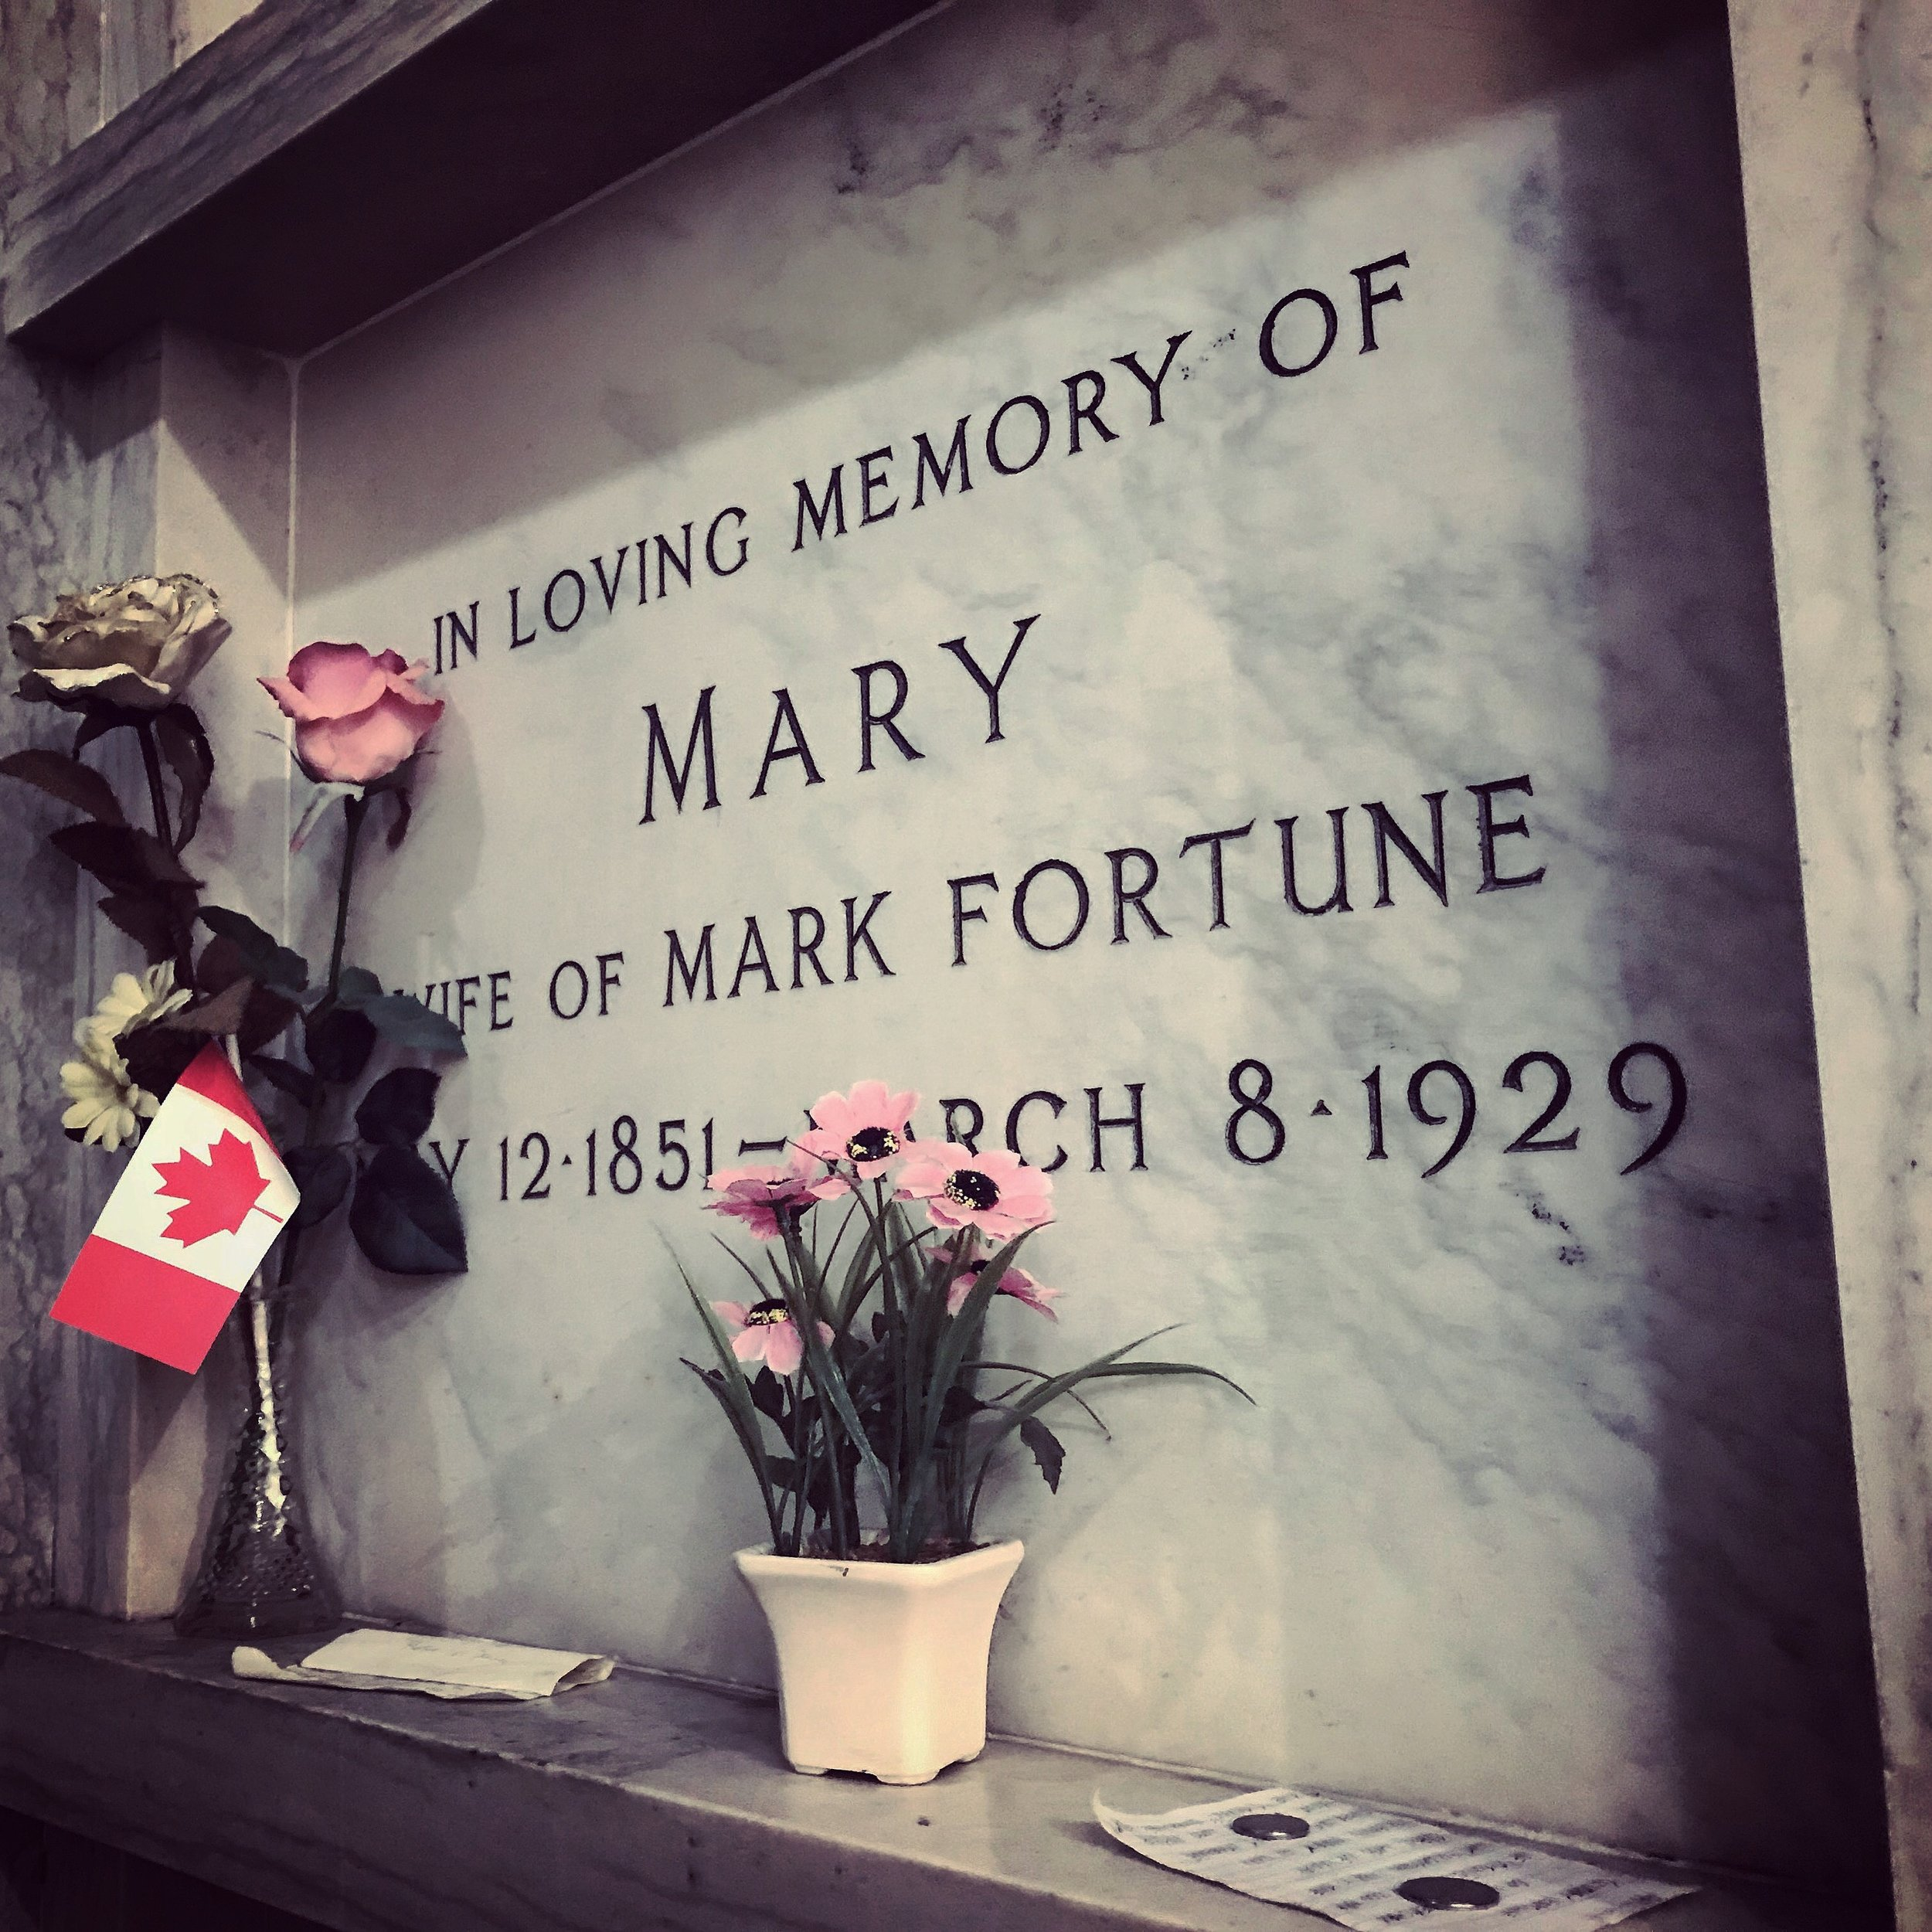 Mary Fortune's Crypt